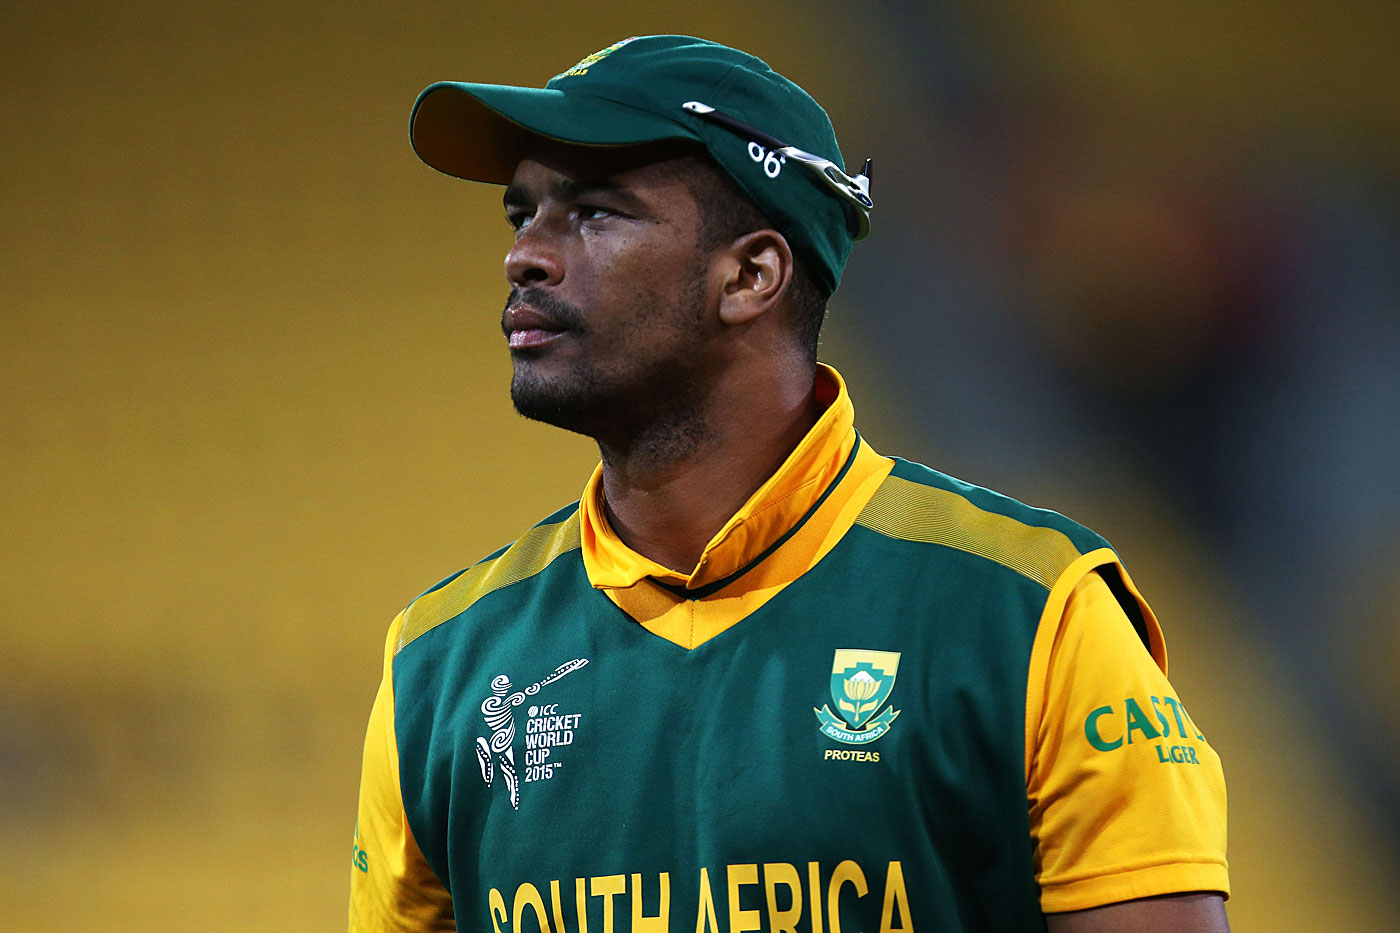 Vernon Philander's selection, based on colour, for the World Cup semi-final created a controversy